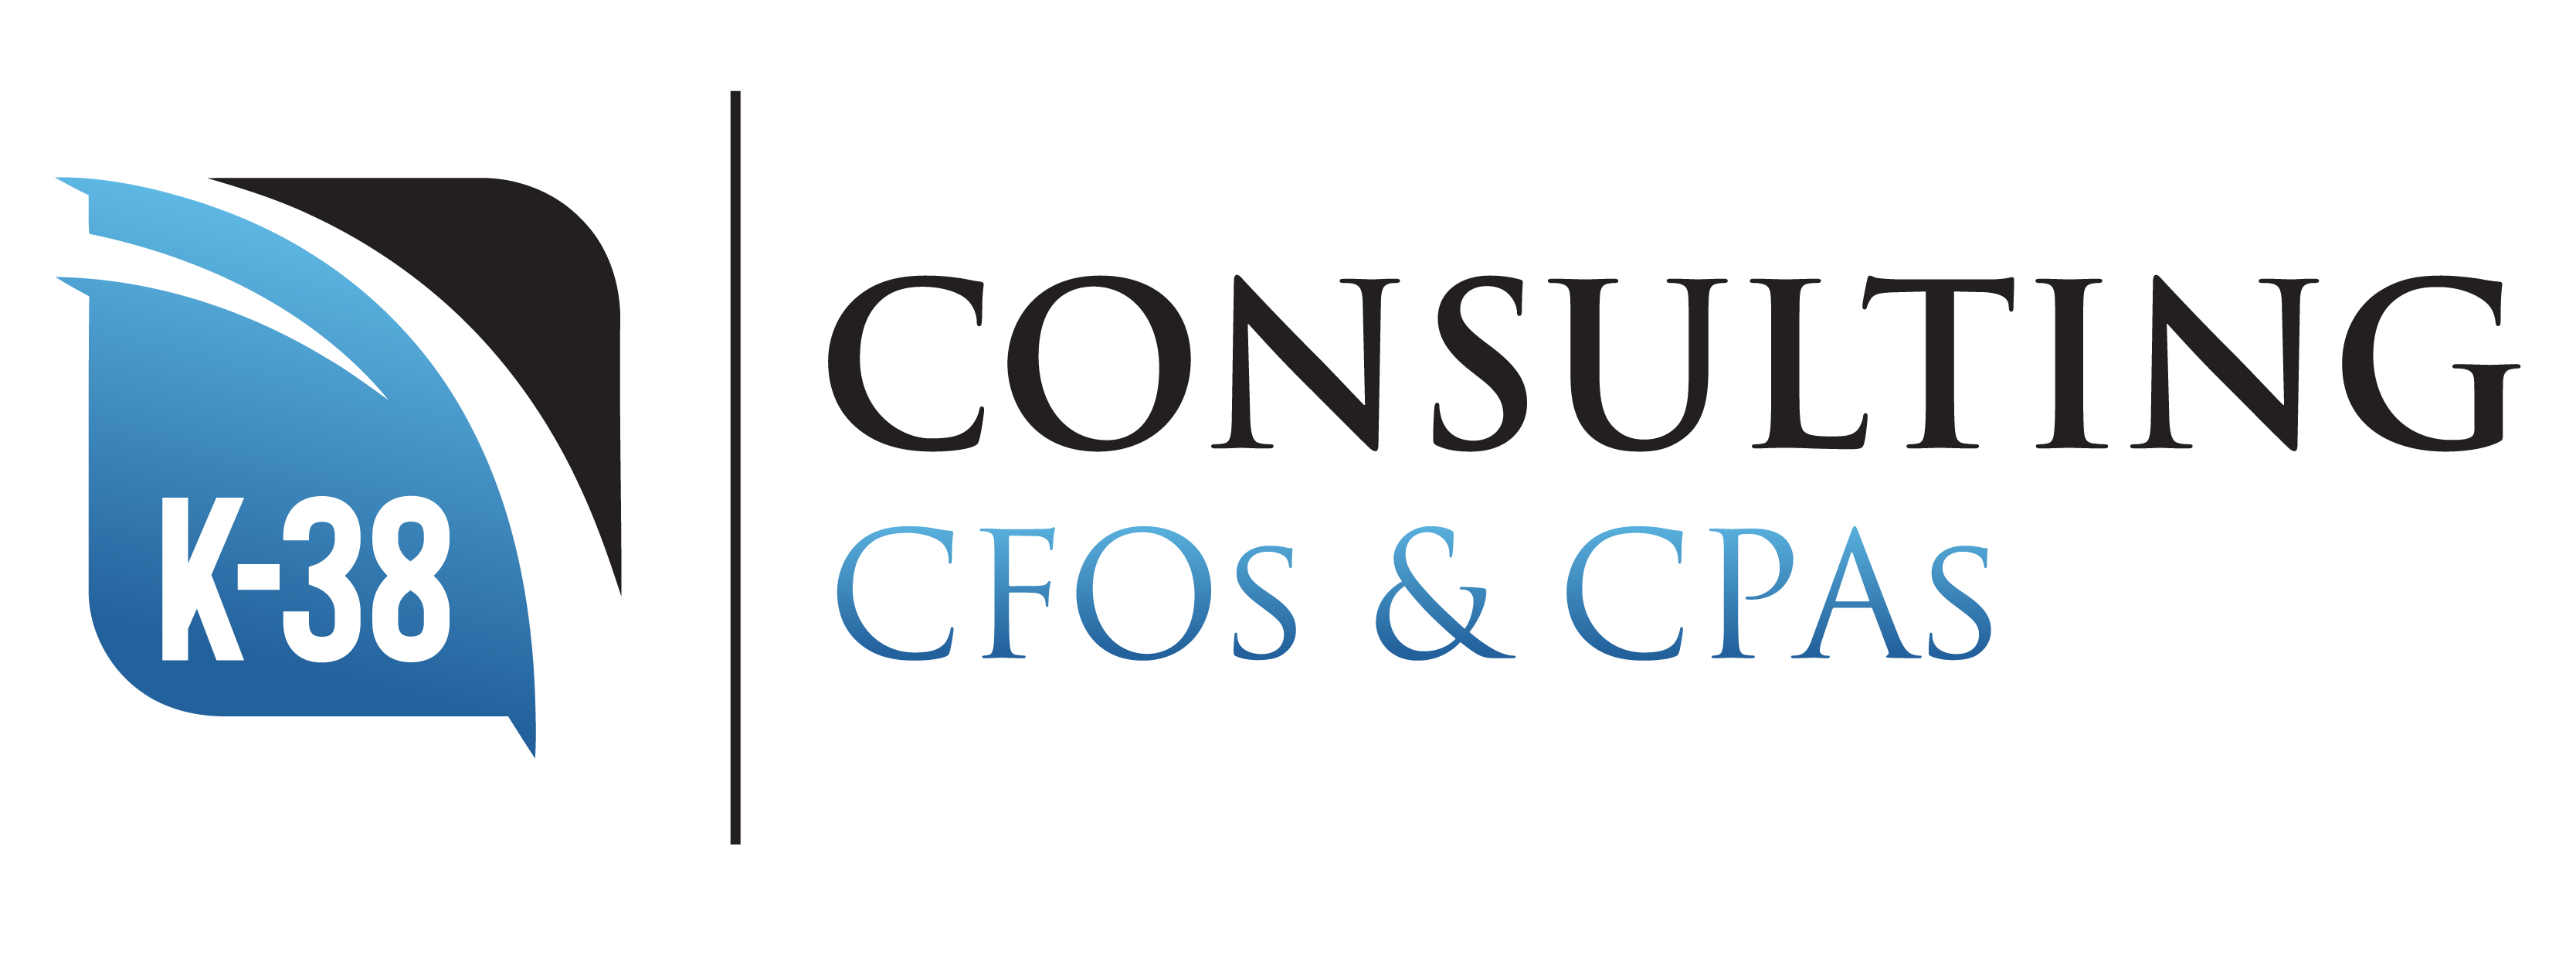 K38 Consulting Launches Fractional CFO Services to Middle Market